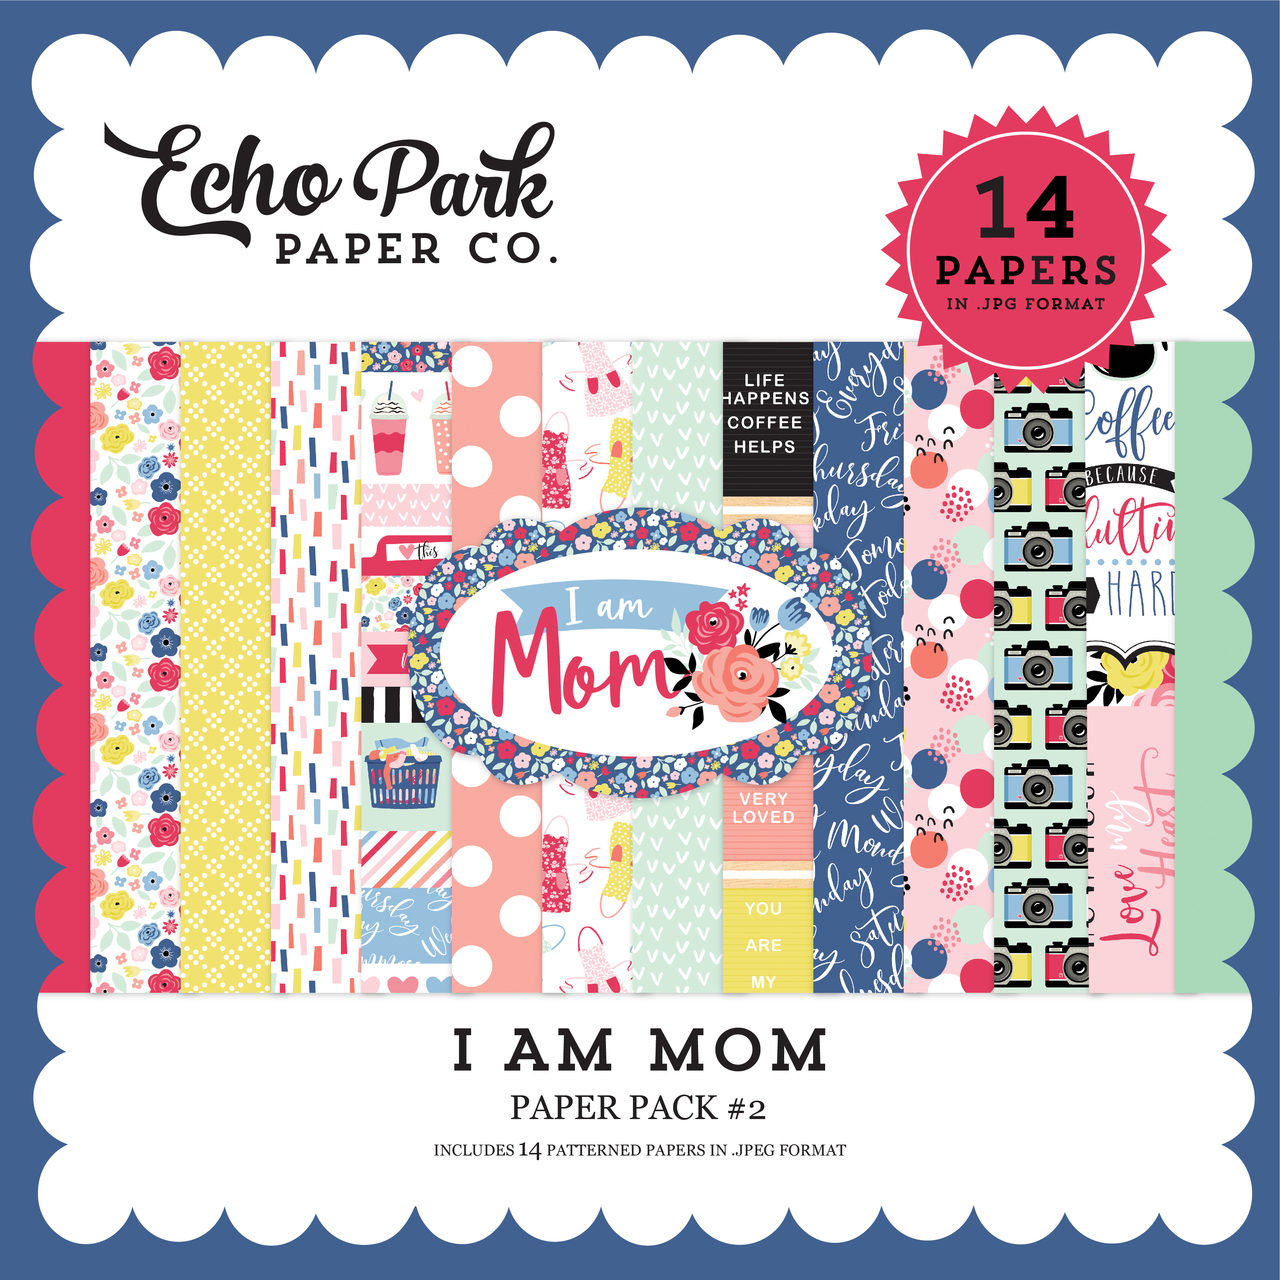 I Am Mom Paper Pack #2